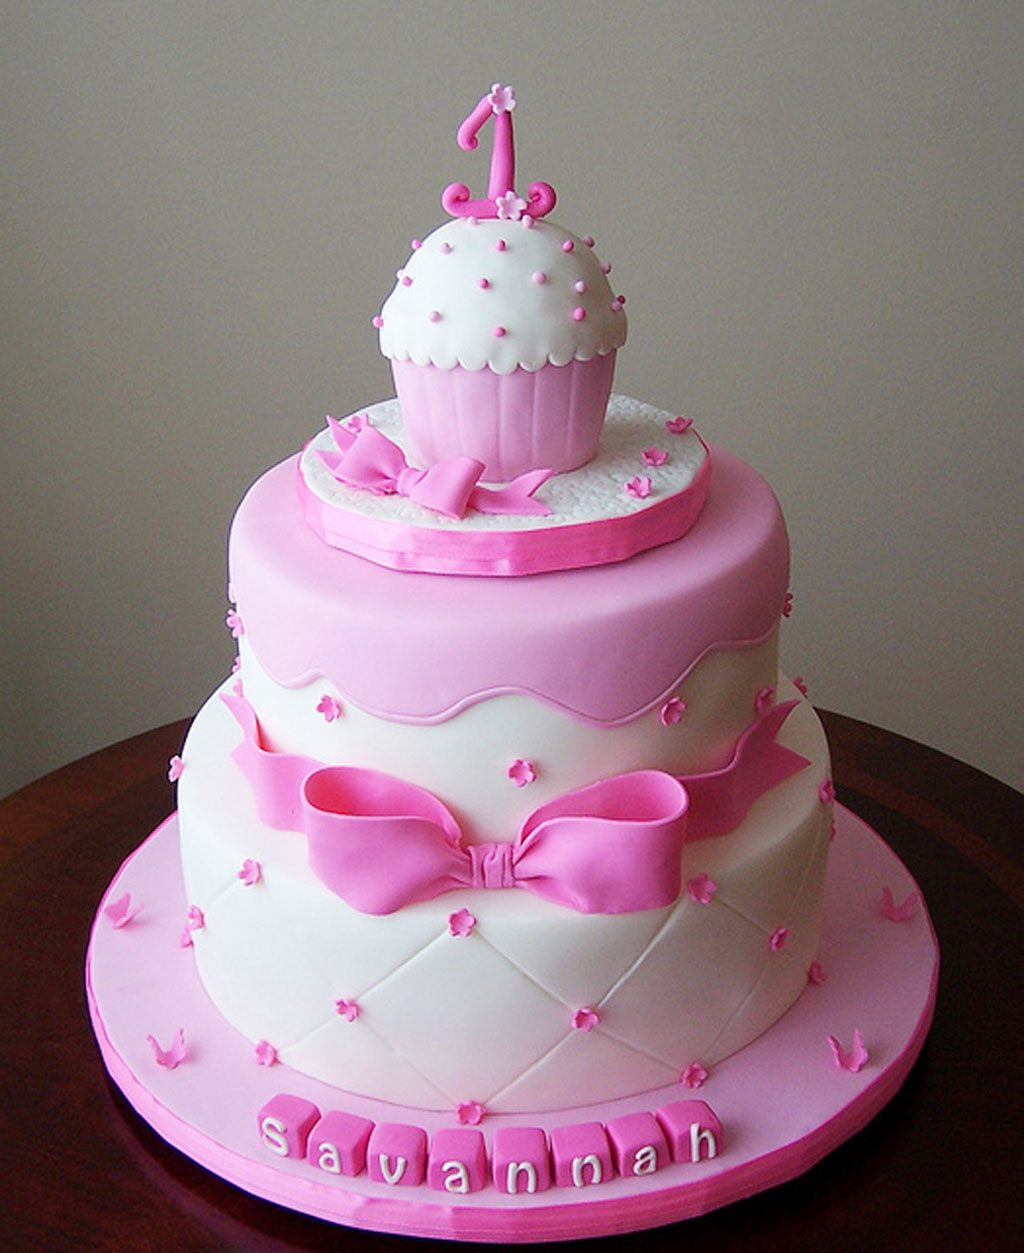 Best Birthday Cake With Name TopBirthdayQuotes